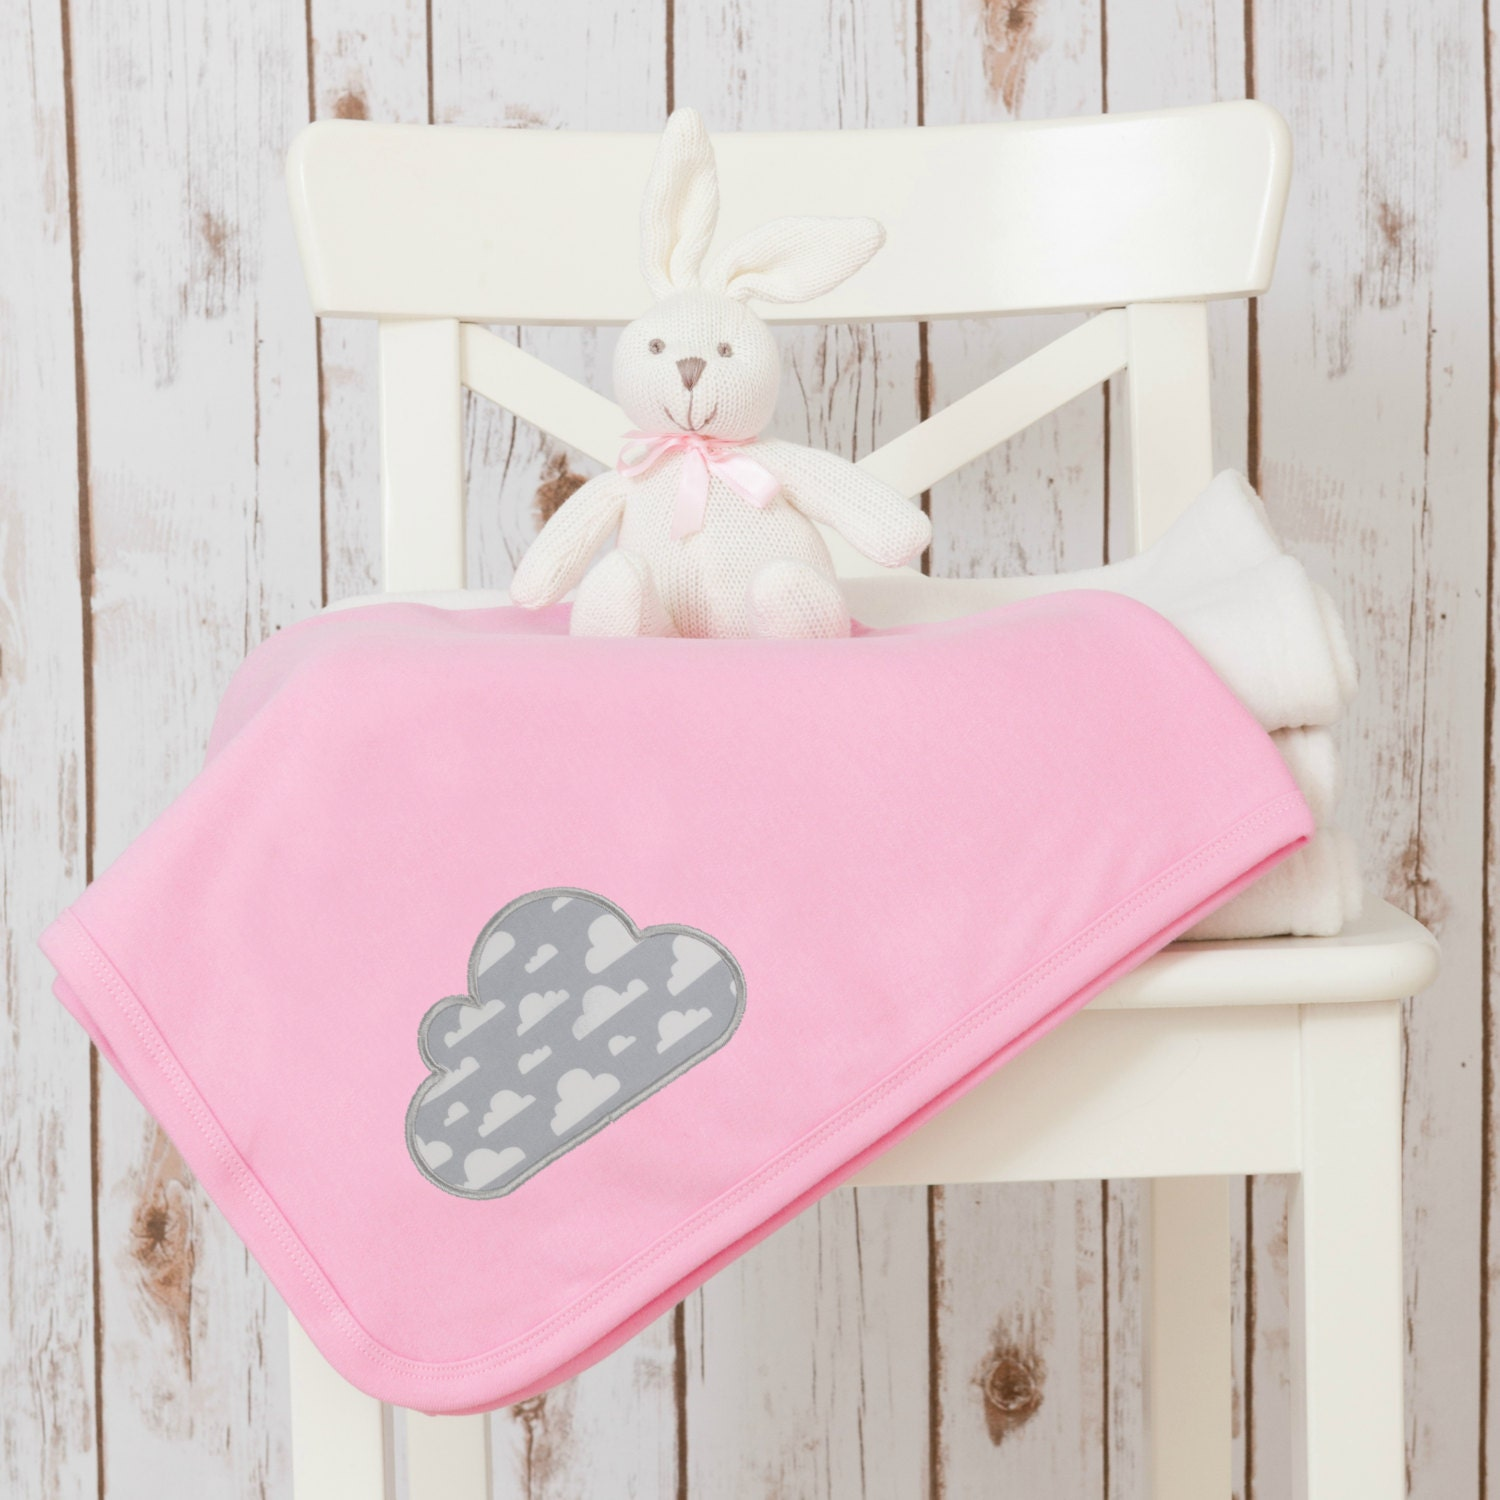 Baby Cloud Blanket  New Baby Blanket  Baby Girl Gift  Baby Boy Gift  Baby Shower Gift